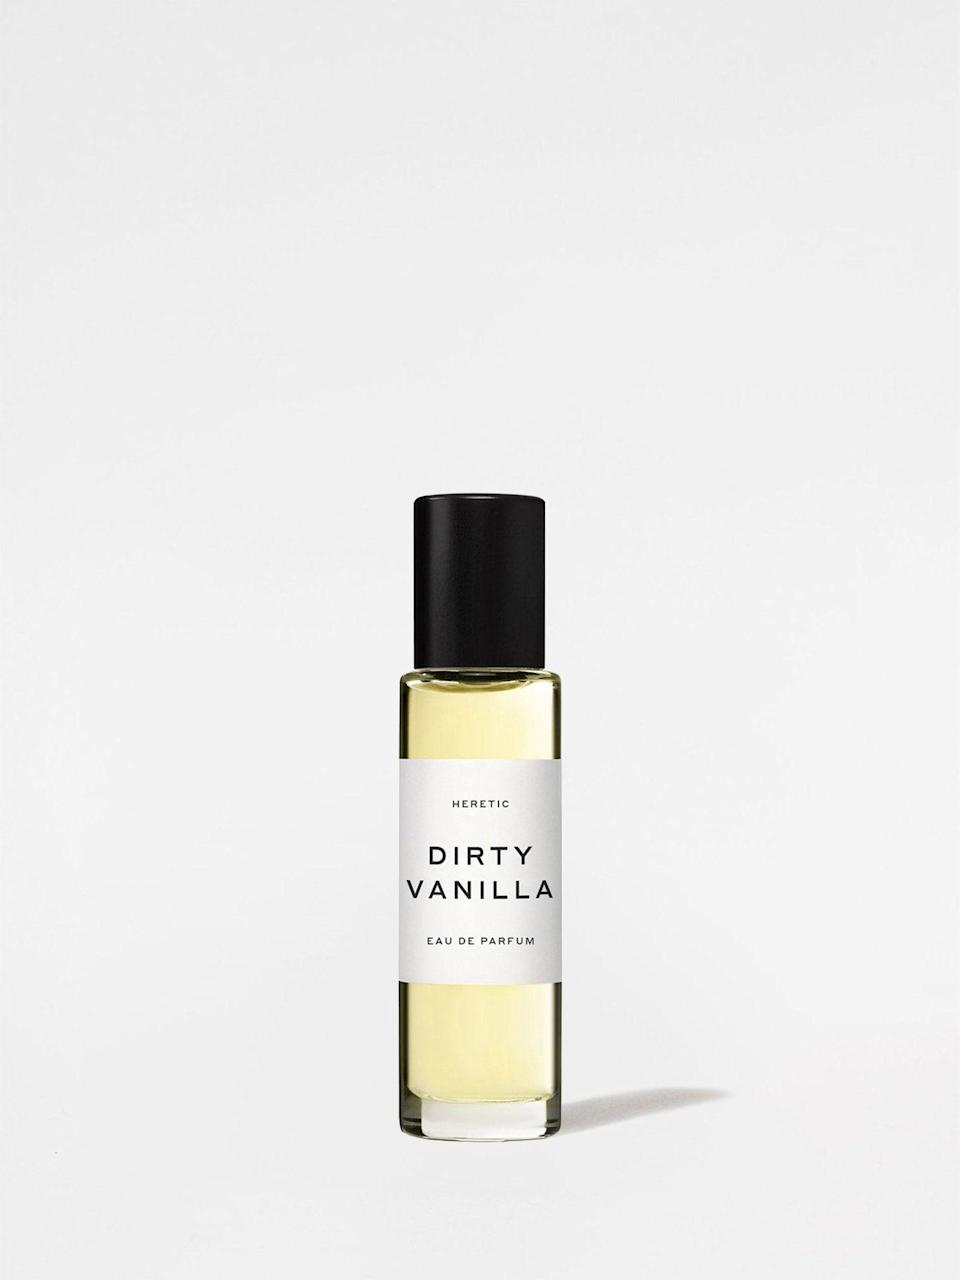 """<h2>Heretic Dirty Vanilla<br></h2><br>""""Appeal to Cancer's sweet, emotional side with a fragrance that indulges in romance,"""" says Potter. """"Look for anything with notes of vanilla.""""<br><br><strong>Heretic</strong> Dirty Vanilla, $, available at <a href=""""https://go.skimresources.com/?id=30283X879131&url=https%3A%2F%2Fstandarddose.com%2Fproducts%2Fheretic-parfum-dirty-vanilla"""" rel=""""nofollow noopener"""" target=""""_blank"""" data-ylk=""""slk:Standard Dose"""" class=""""link rapid-noclick-resp"""">Standard Dose</a>"""